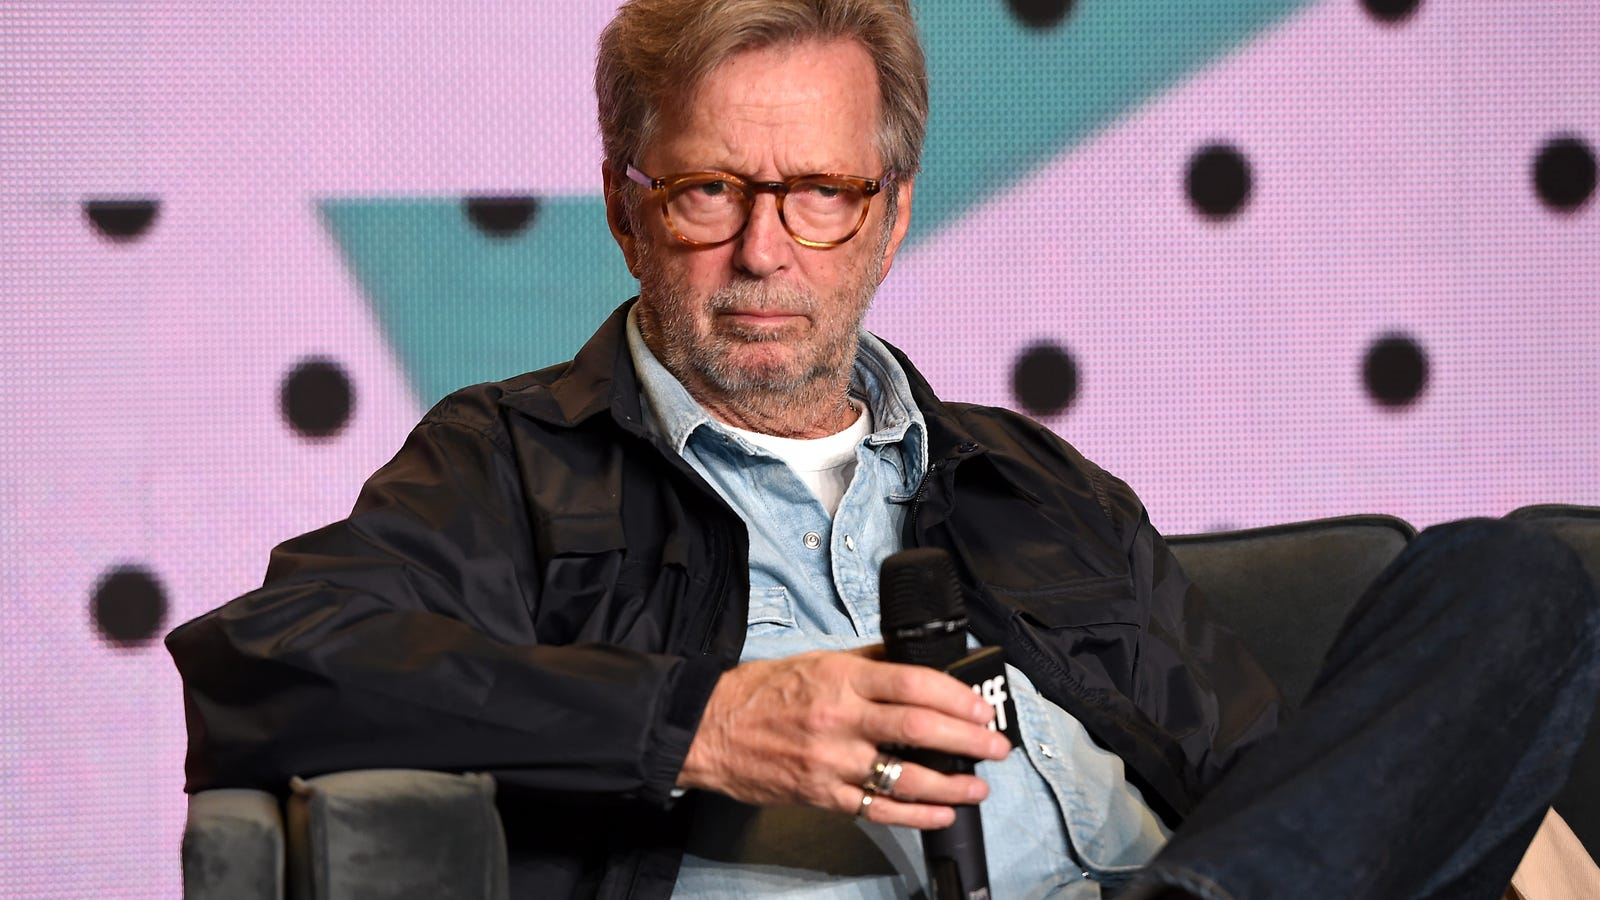 Eric Clapton Whitesplains His Racism. He Even Had a Black Girlfriend